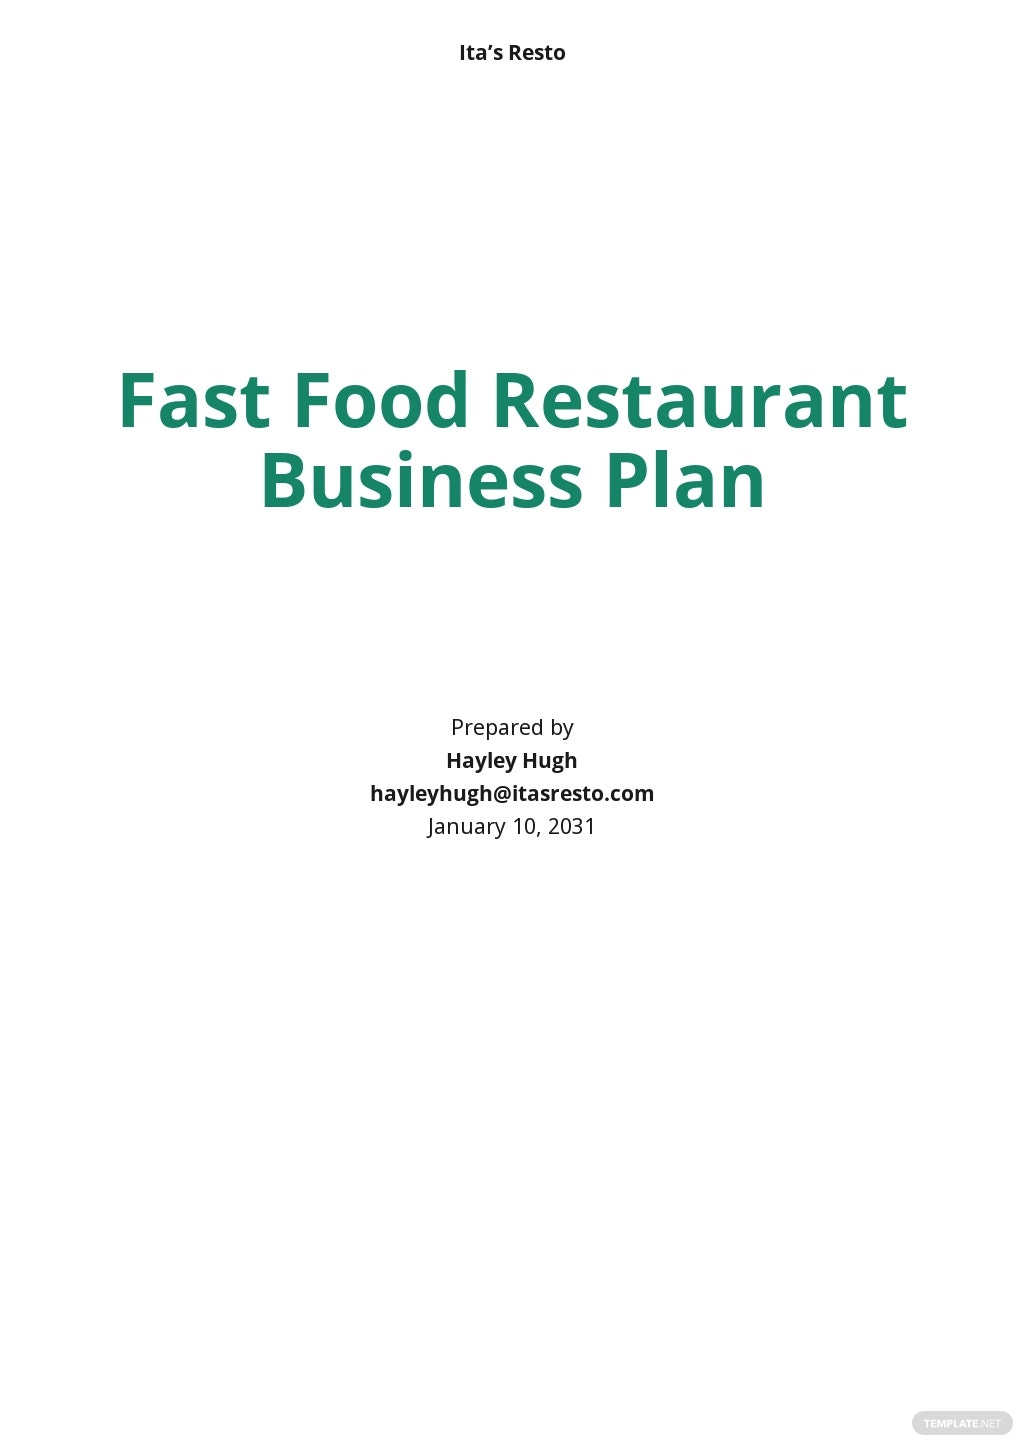 Fast Food Restaurant Business Plan Template